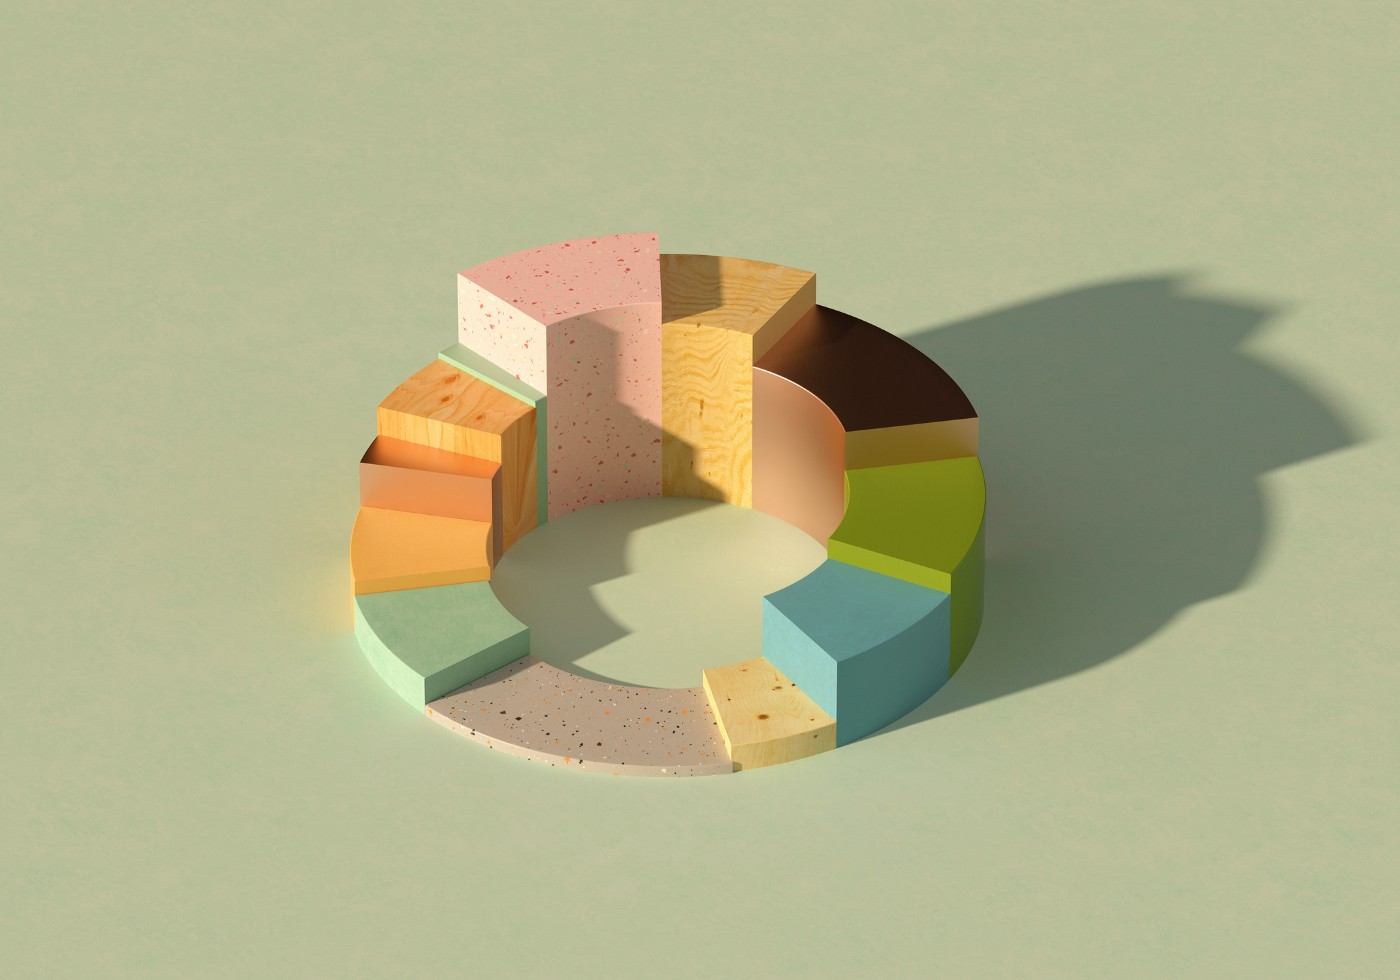 Digital generated image of abstract multi colored donut/pie chart on pastel green background.